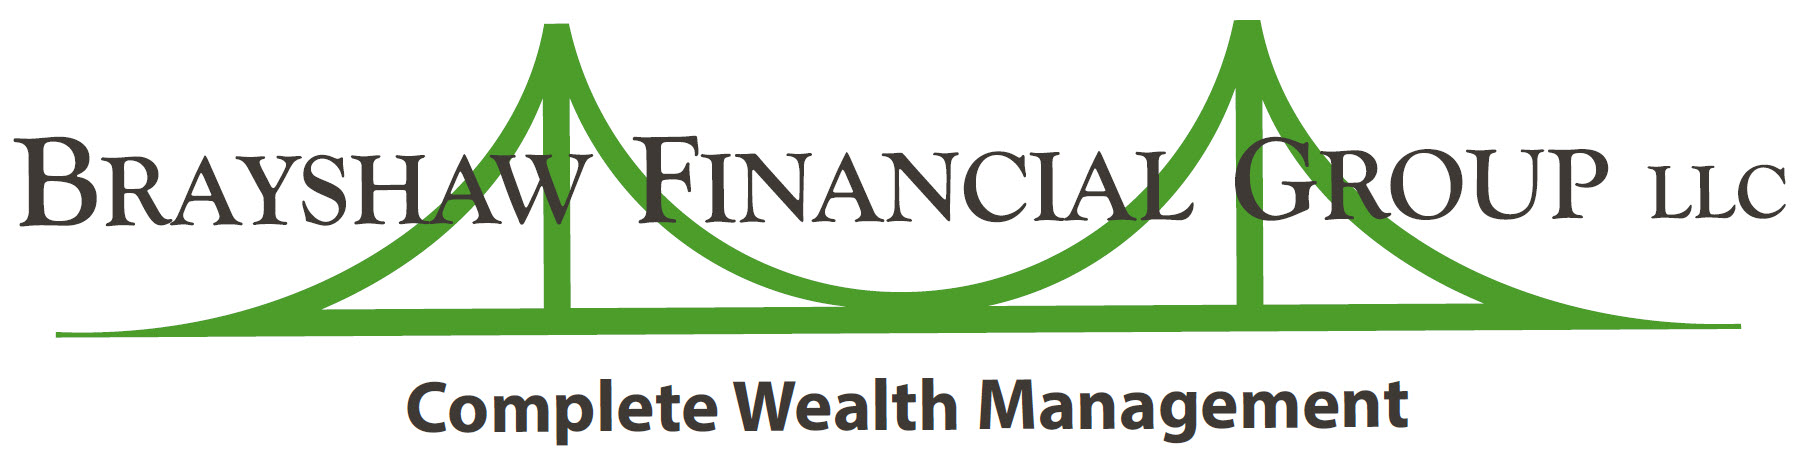 Brayshaw Financial Group Is Pleased To Announce That They Have Been Named a Recipient of The Coveted WealthManagement.com 2019 Thrive Awards